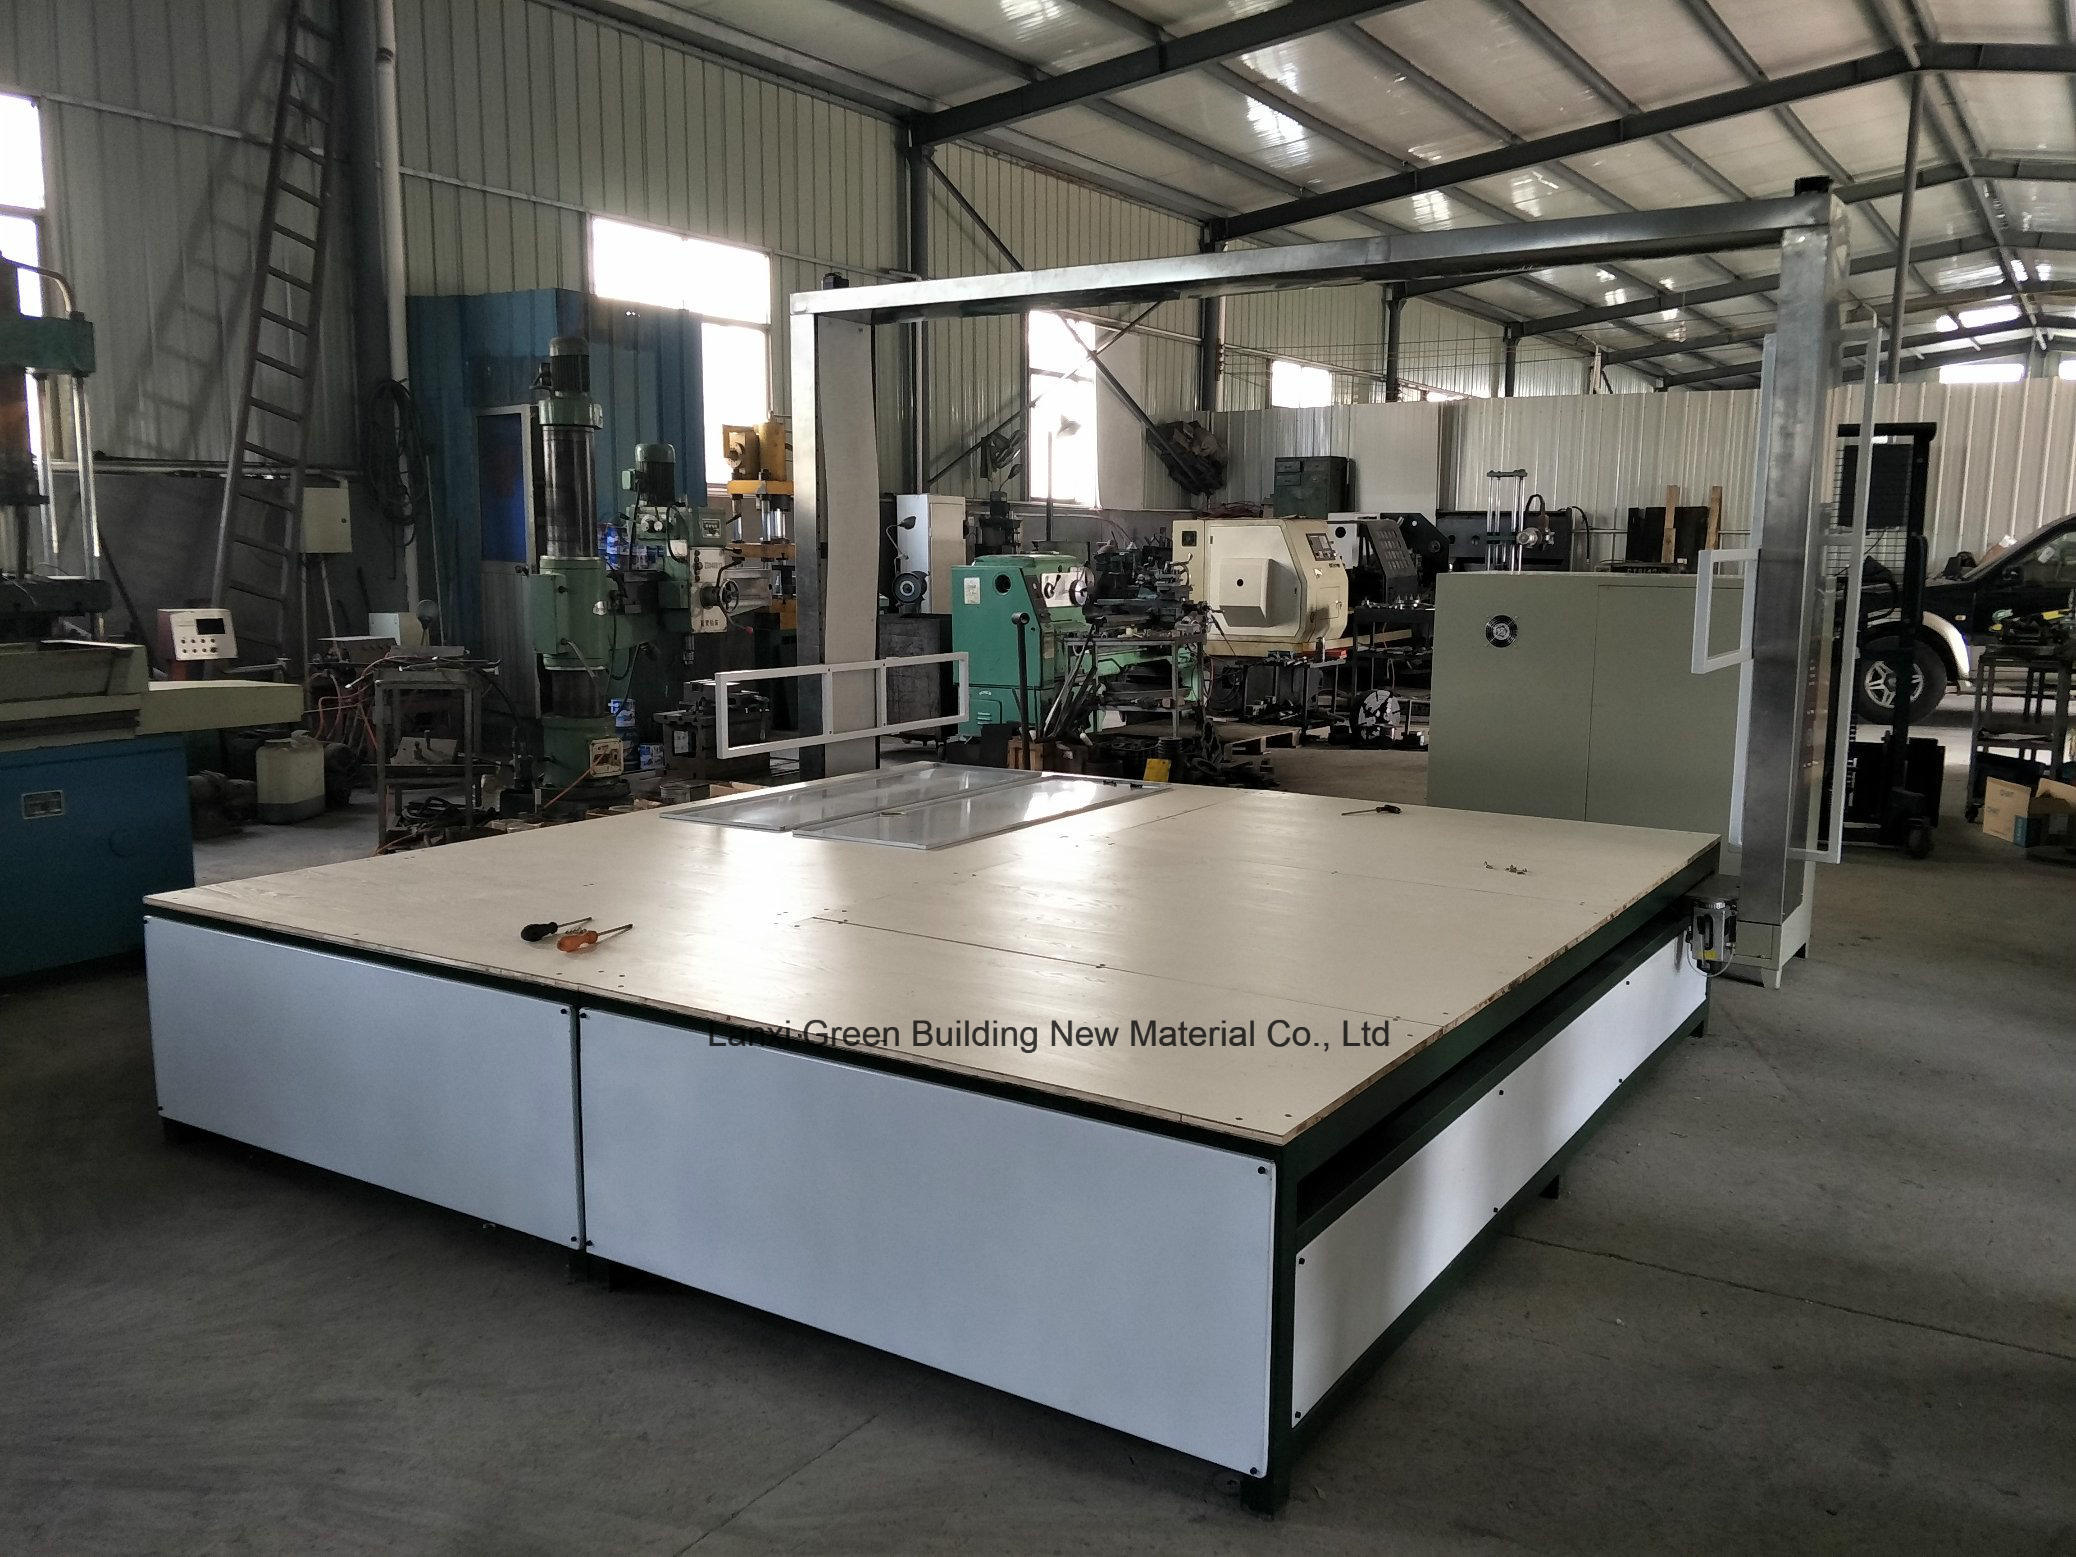 China Cnc Hot Wire Foam Cutter Photos Pictures Made In China Com